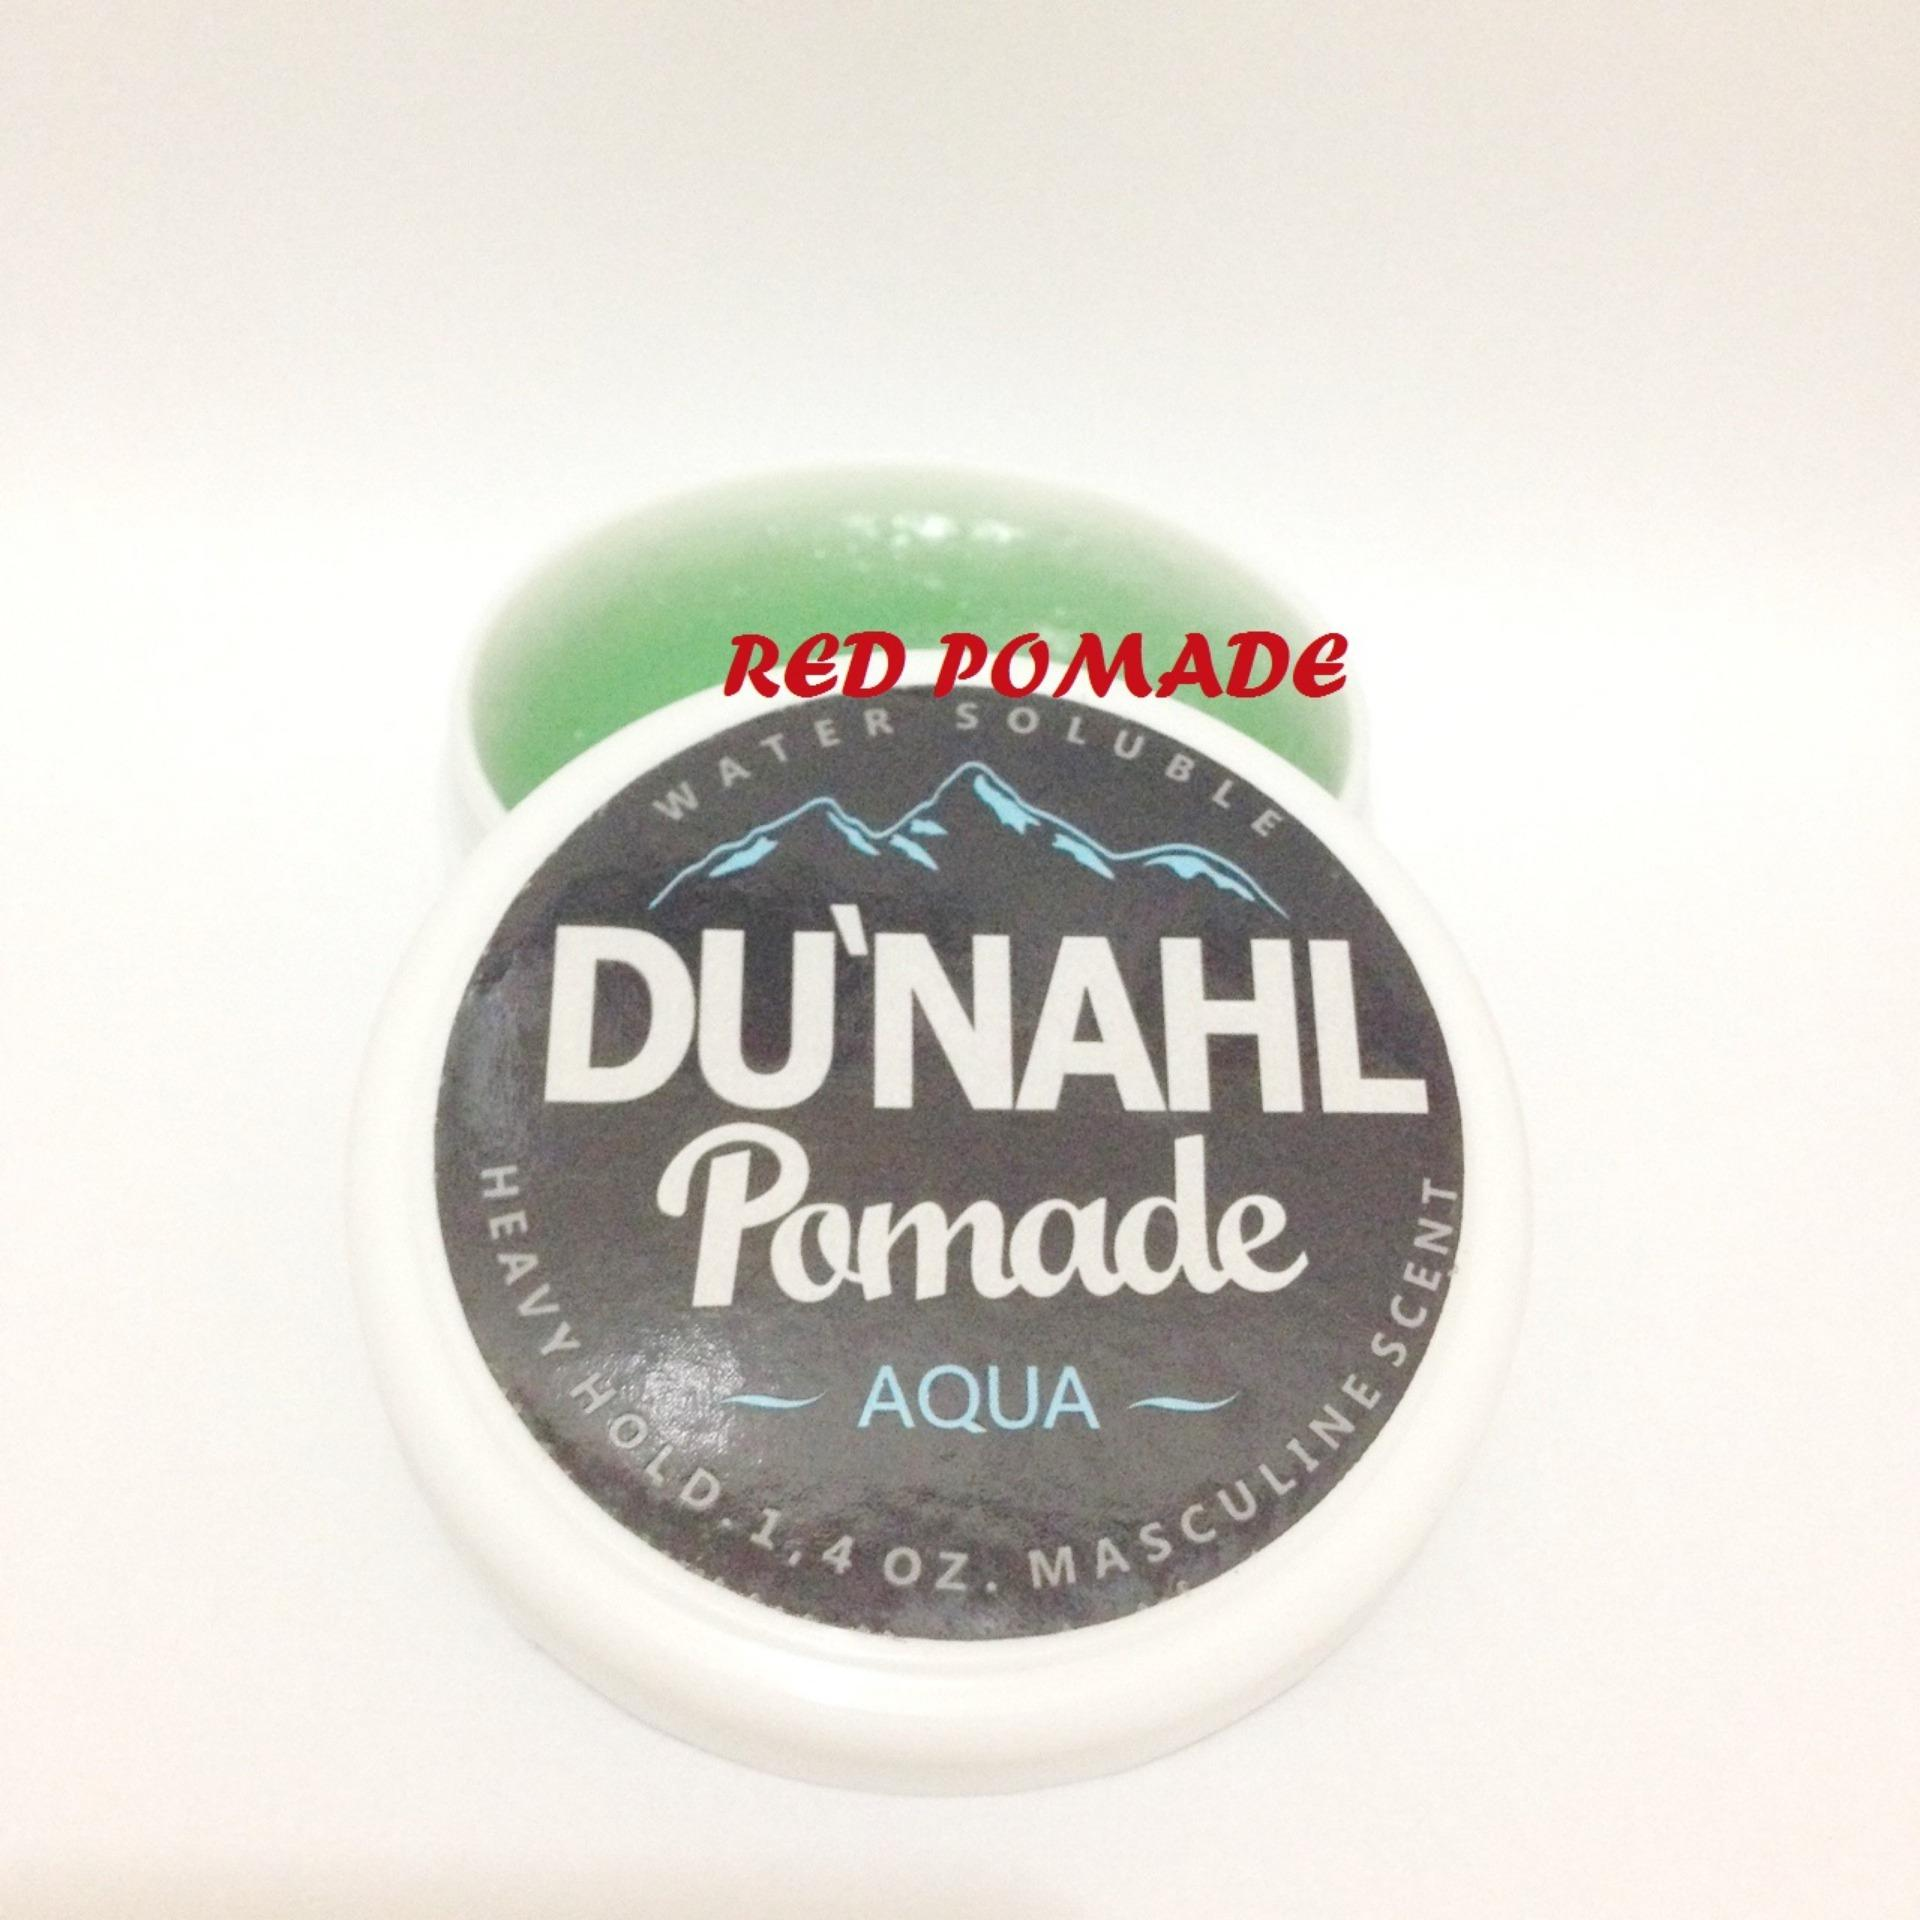 HARGA POMADE DUNAHL DU'NAHL MINI AQUA 1.4 OZ HEAVY HOLD WATERBASED WATER BASED TRAVEL SIZE + FREE SISIR SAKU Terbaik